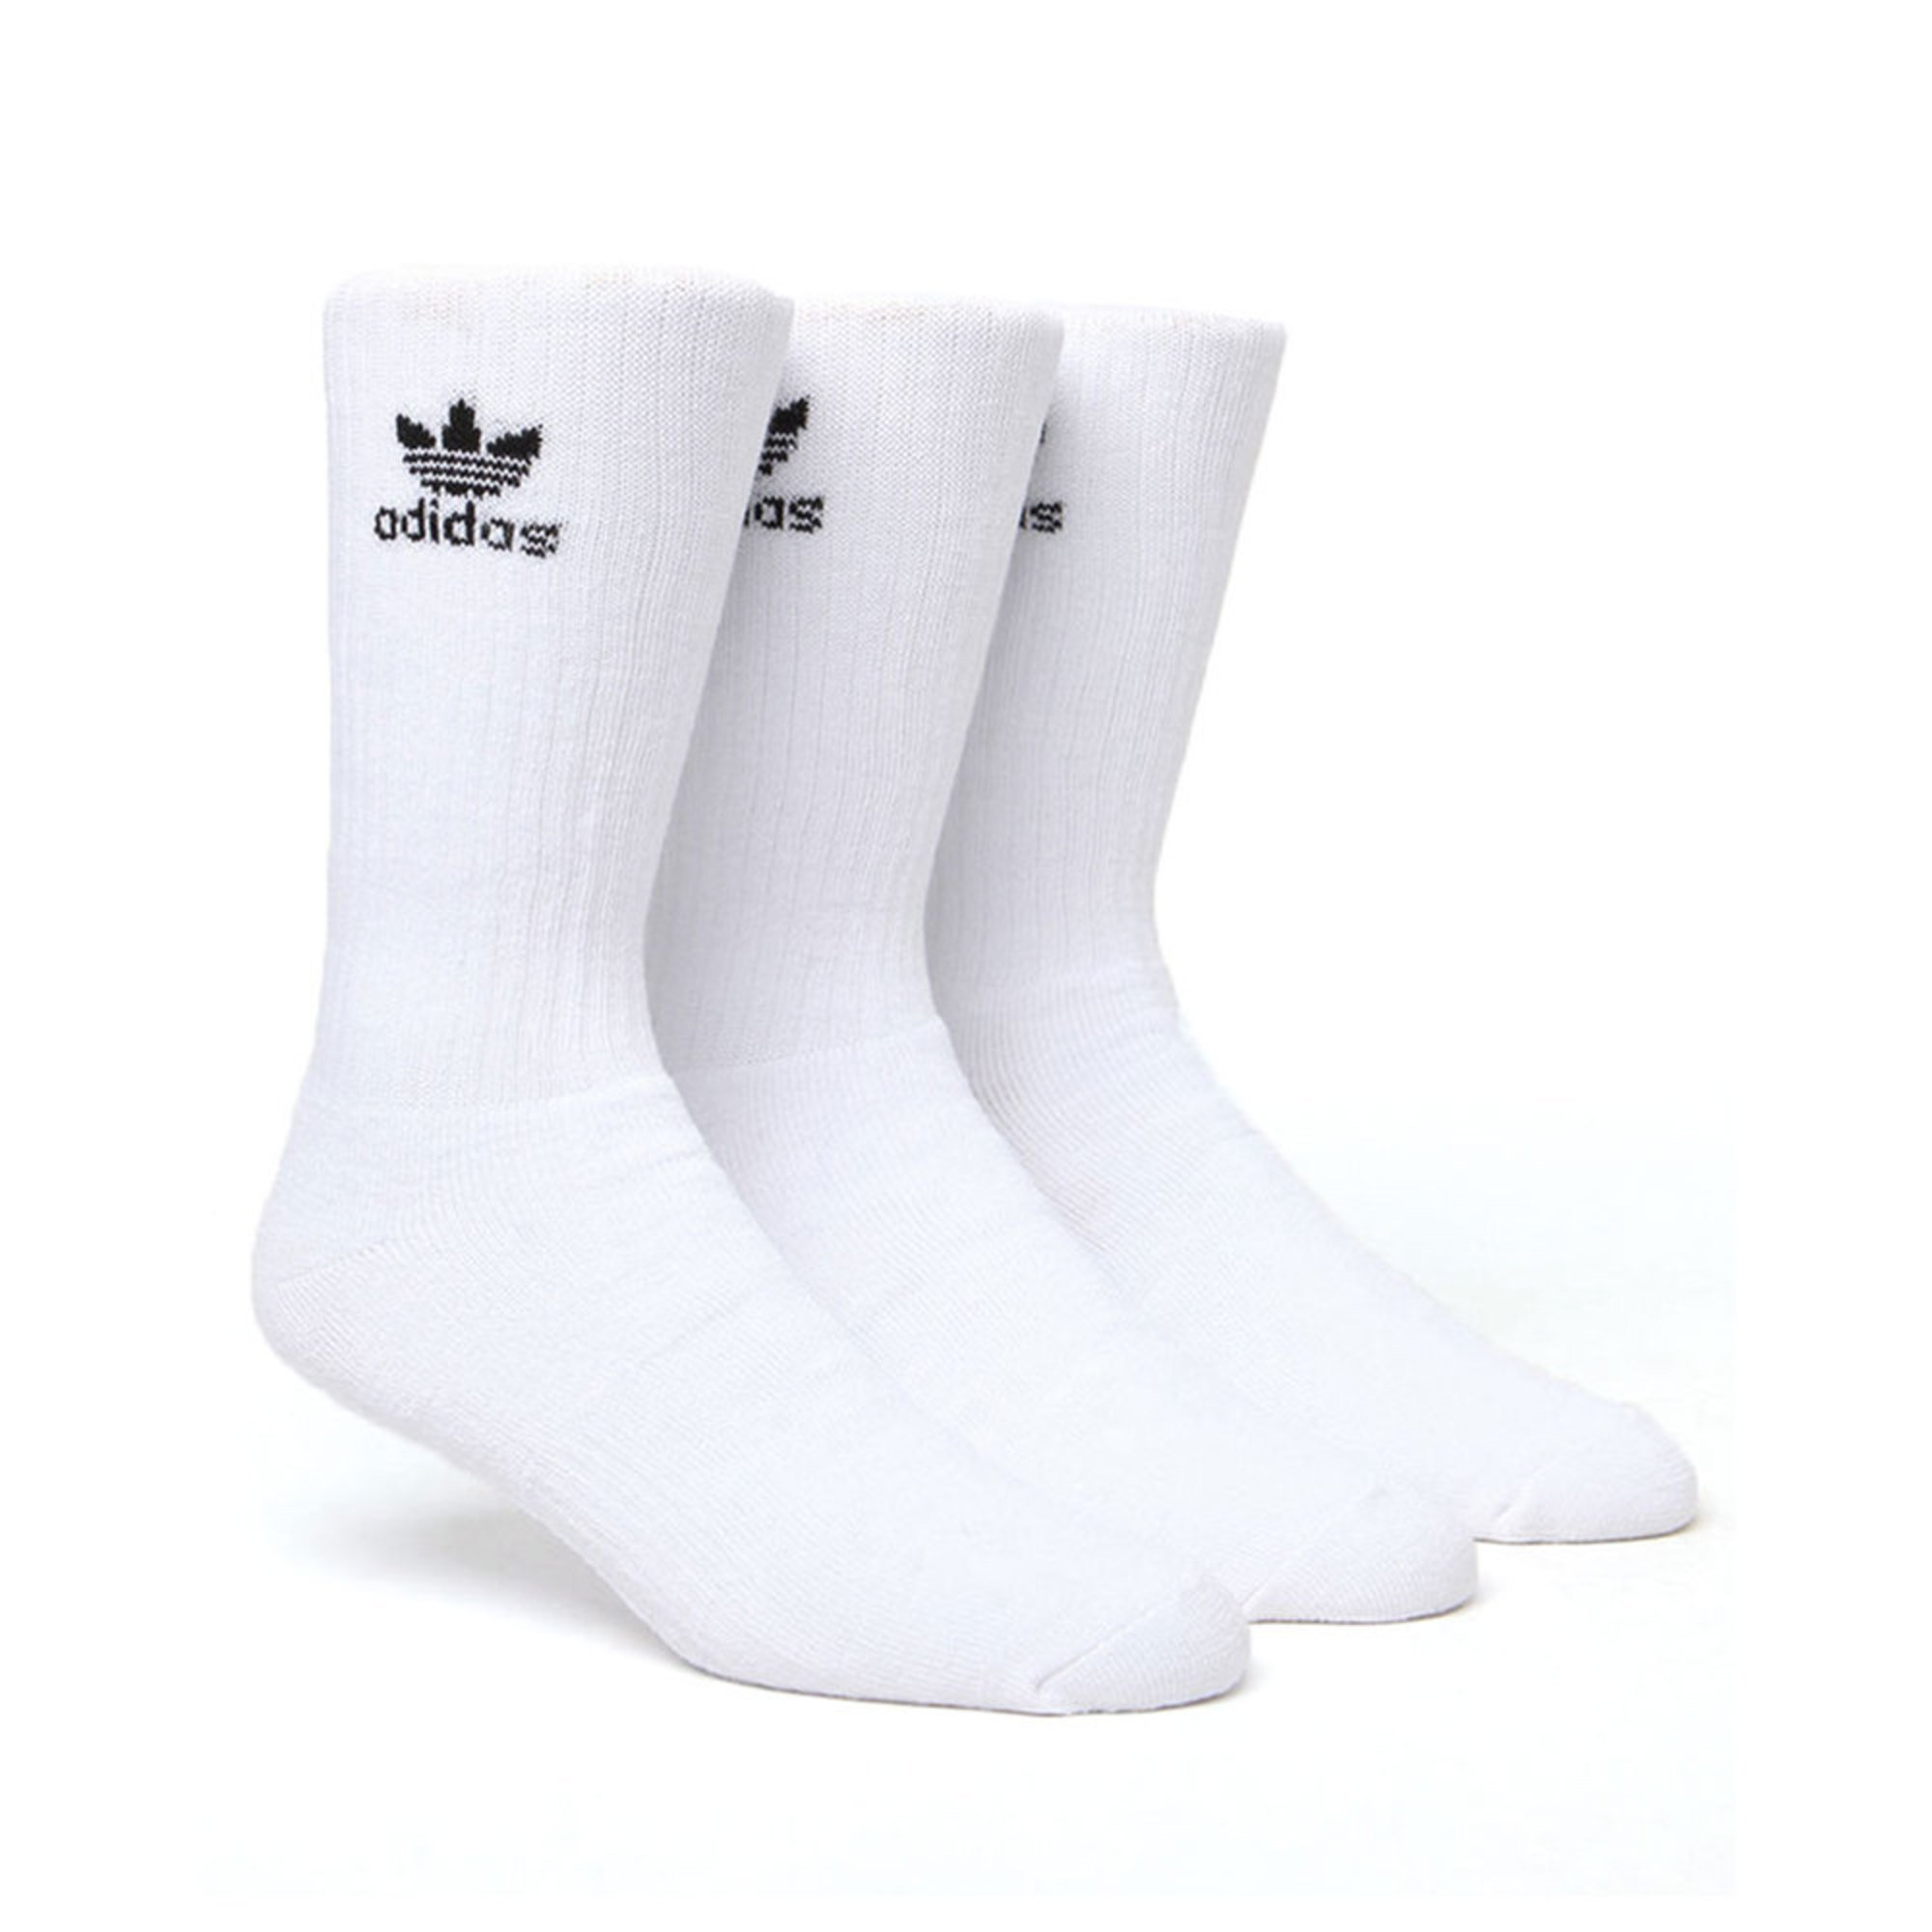 sale retailer 60d13 e5f9f Adidas Mens Original Trefoil 6-pack No Show Socks  Activewear Socks   Apparel - Shop Your Navy Exchange - Official Site